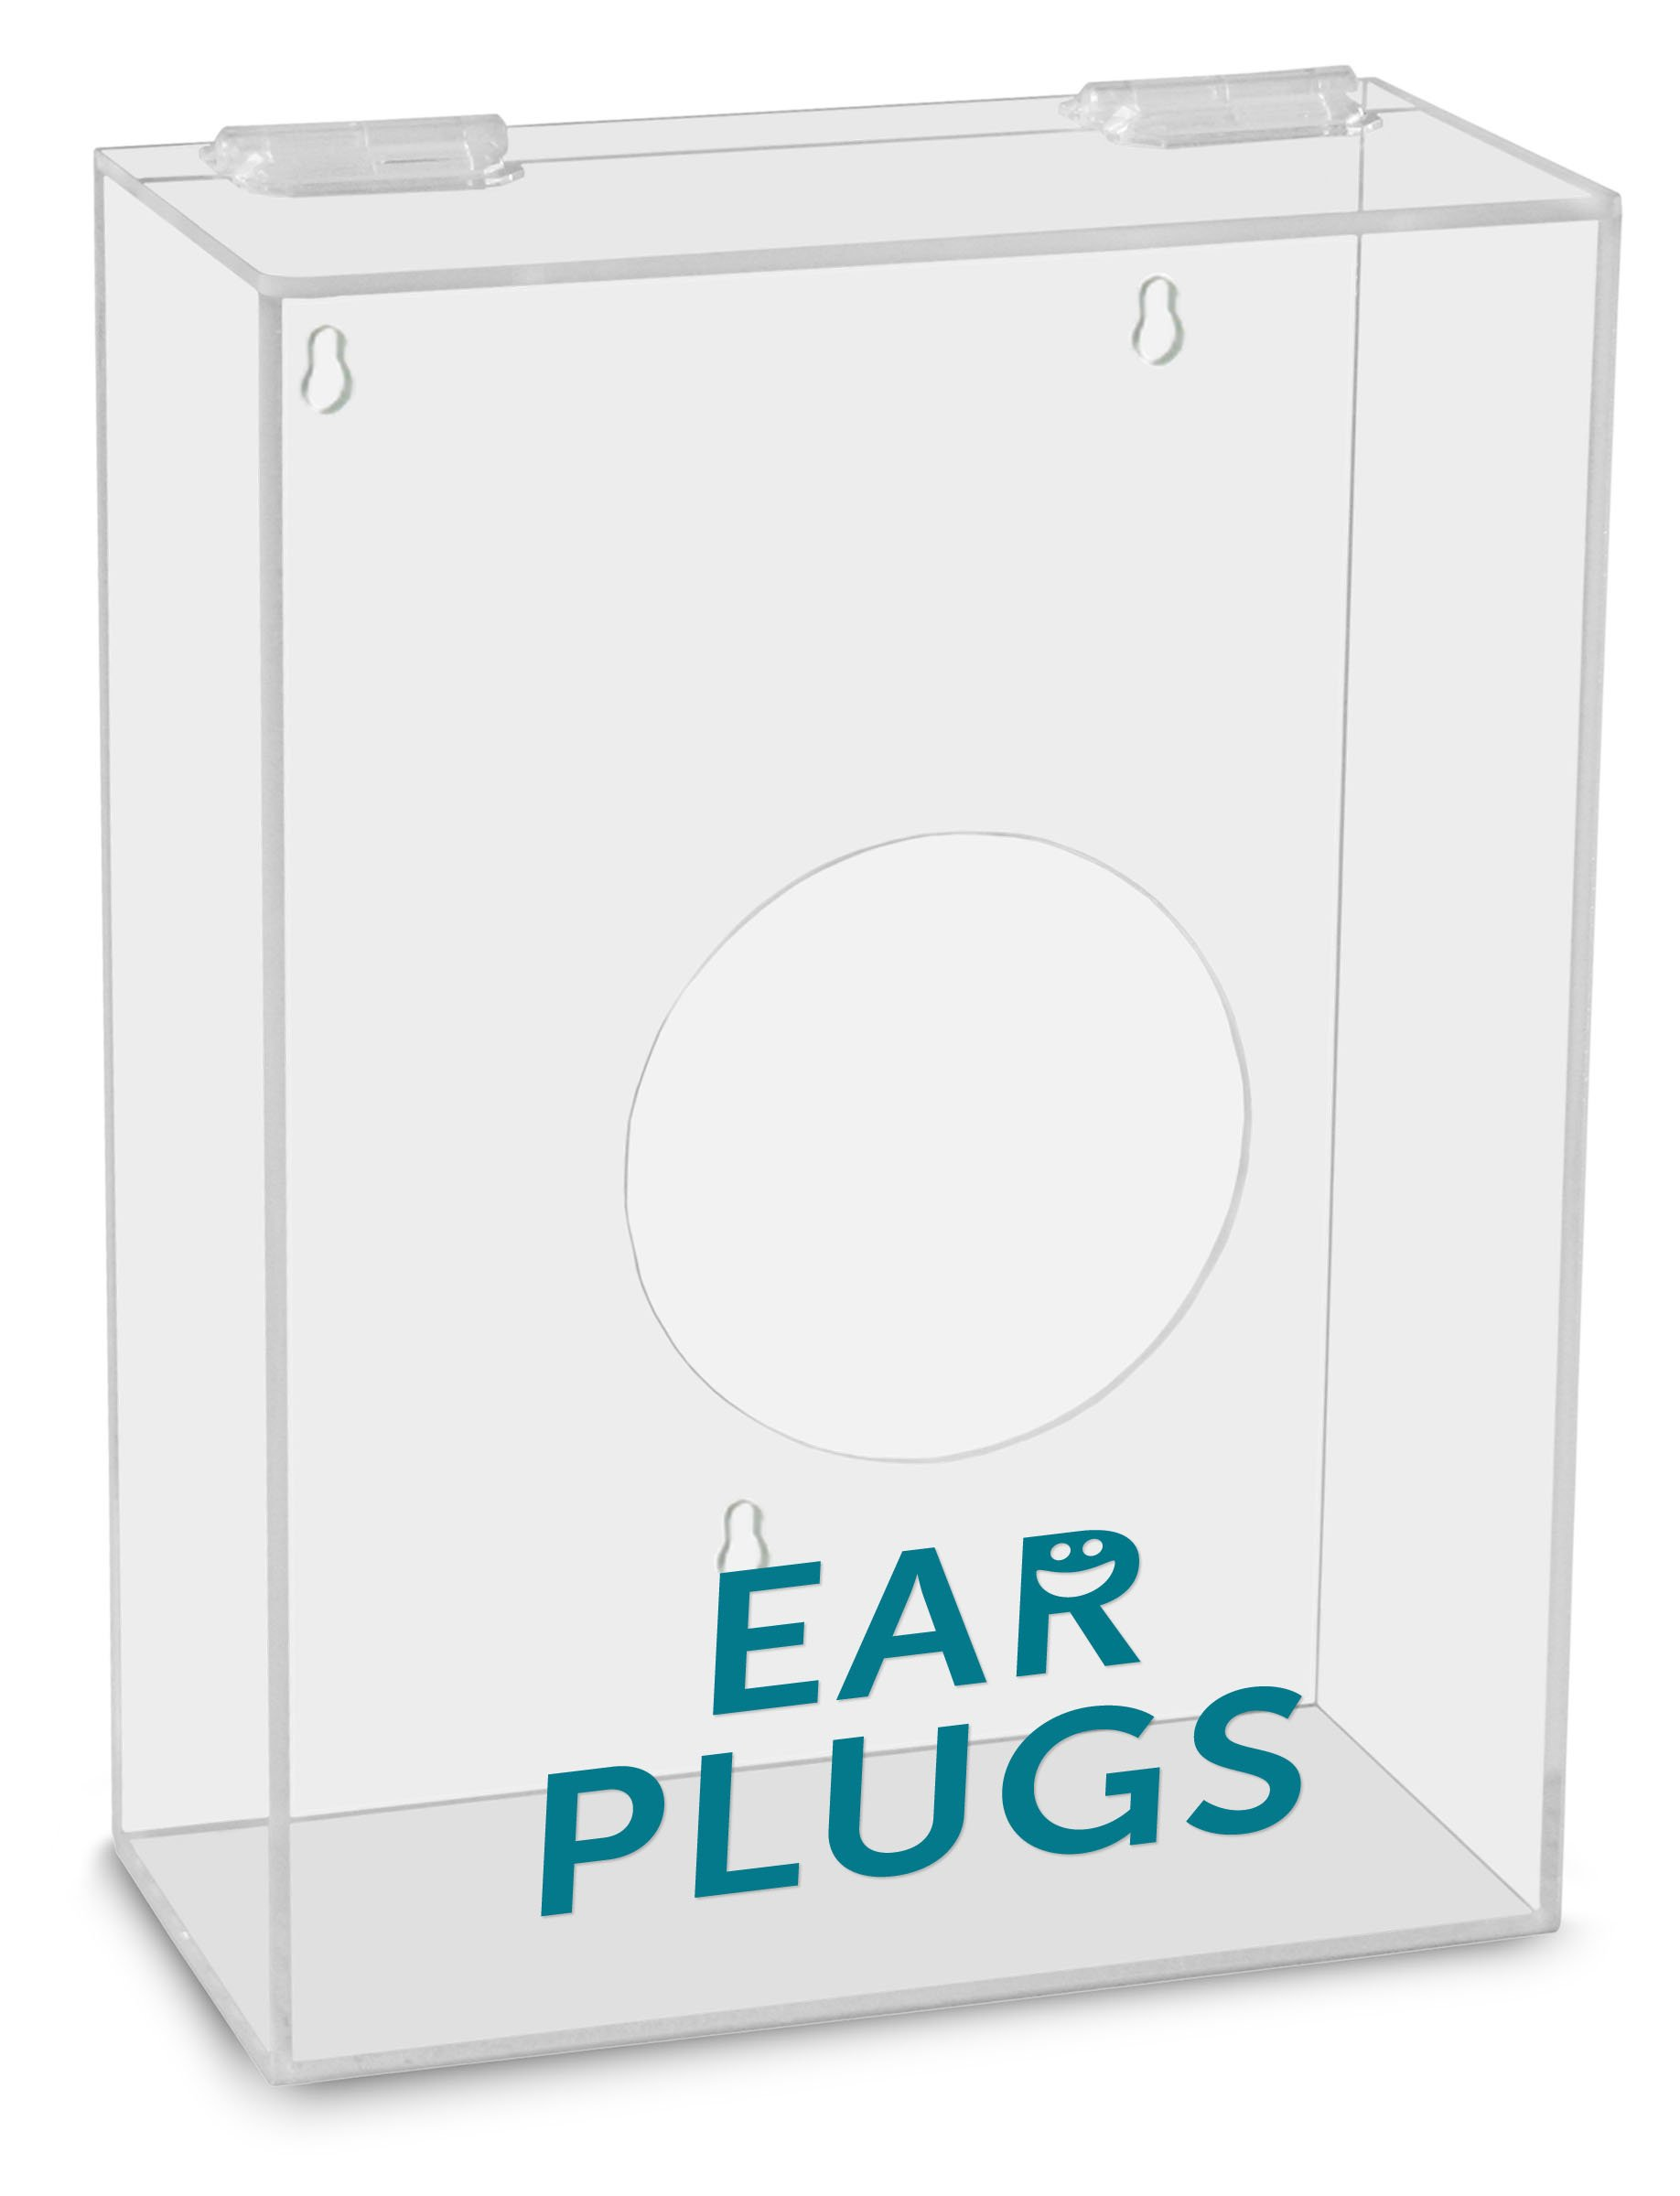 TrippNT 51320 Ear Plugs Labeled Small Apparel Dispenser, 9'' Width x 12'' Height x 4'' Depth